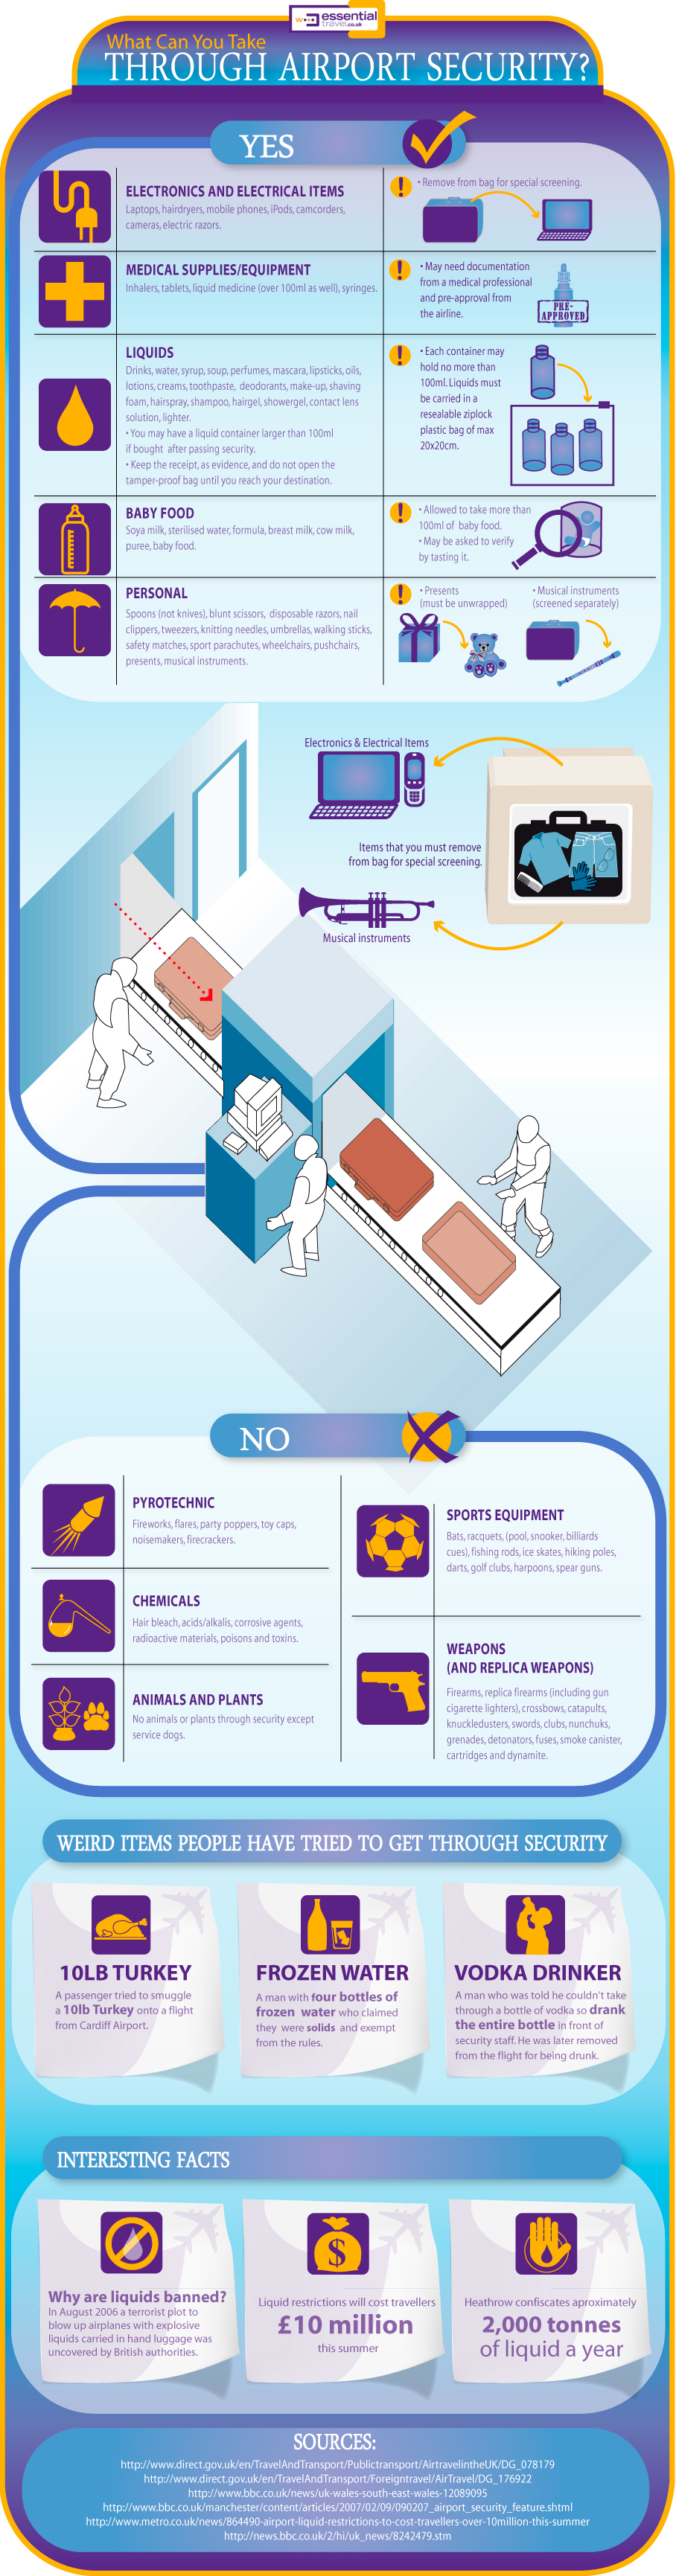 AirportSecurityinfographic_4ffdeafdc8b57